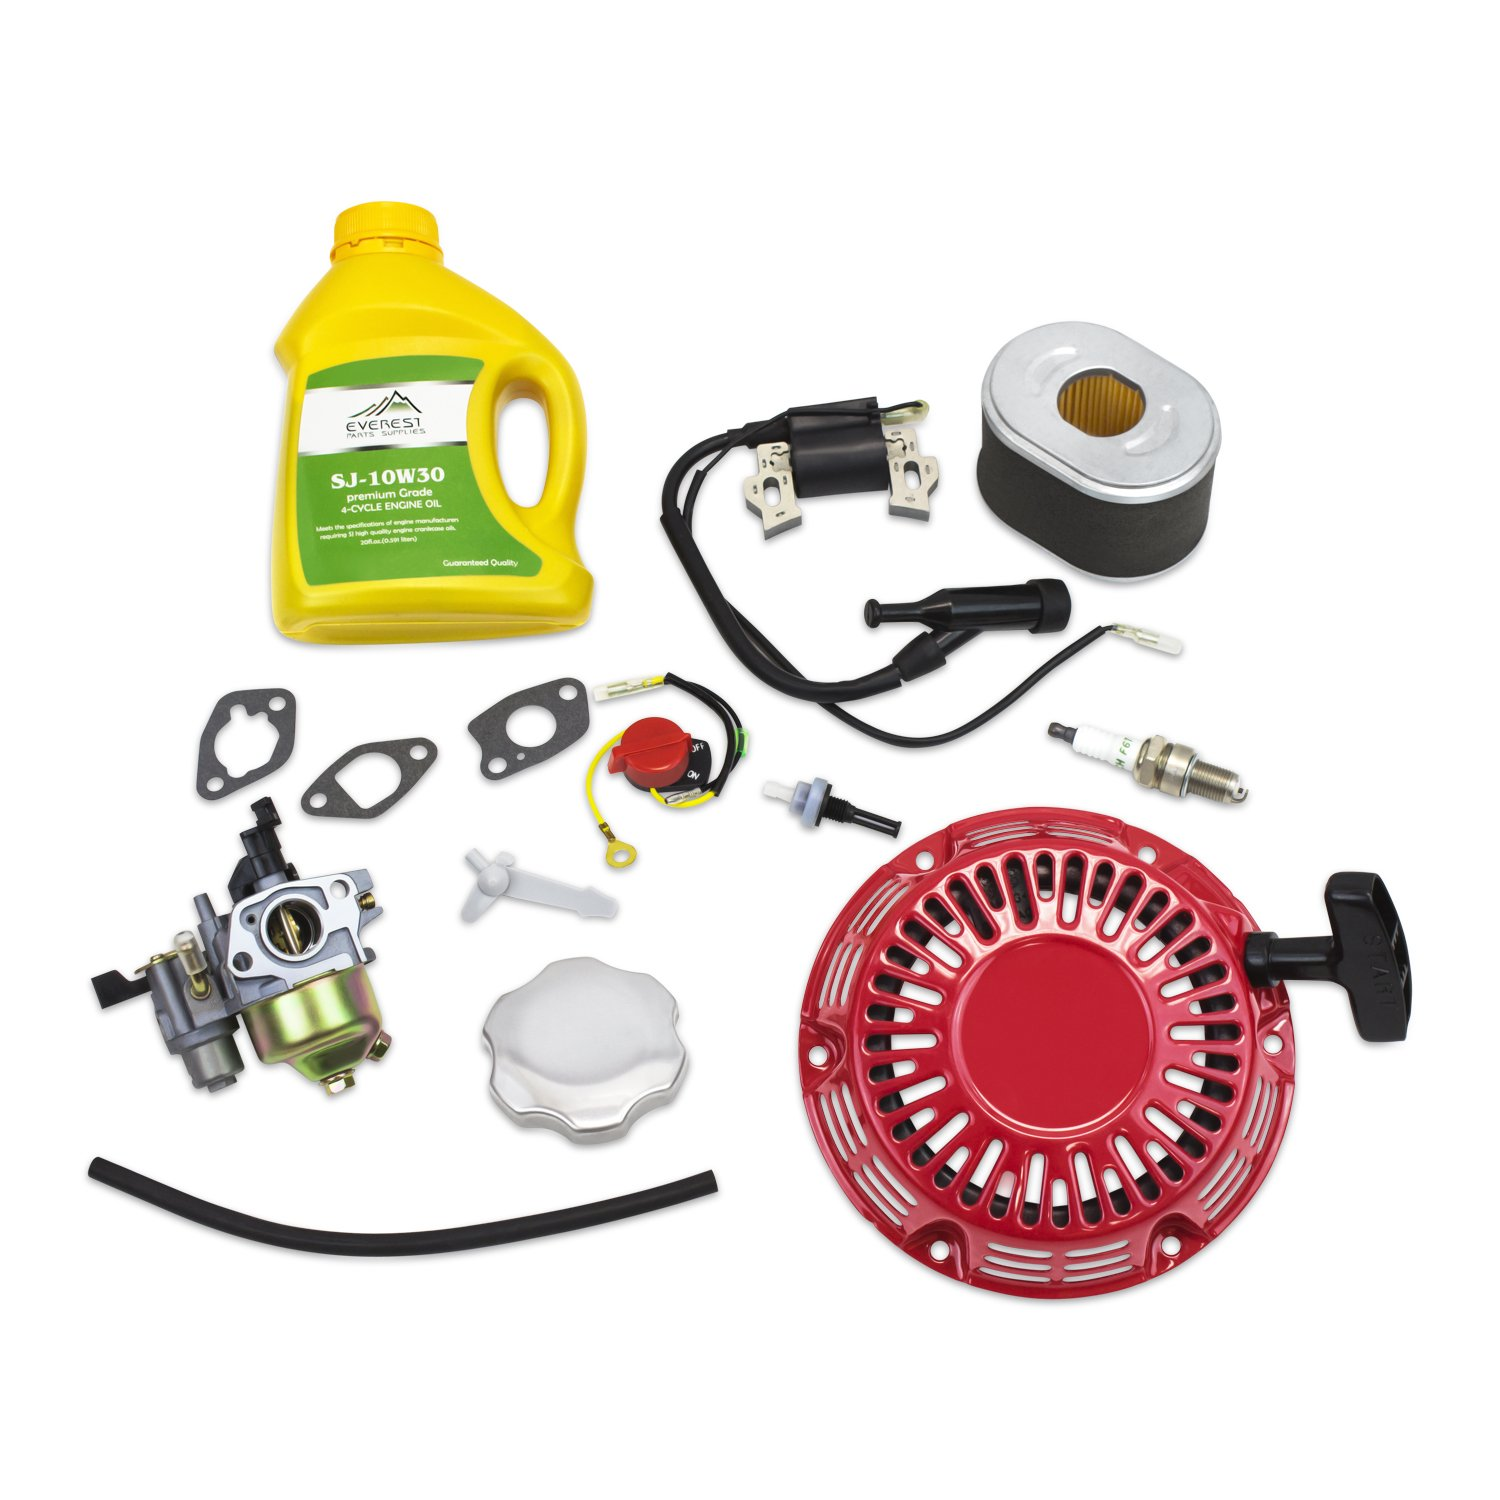 Parts For Honda Gx160 Hondaexpresssparkplugdiagramjpg Kit Recoil Carburetor Ignition Coil Spark Plug Air Filter